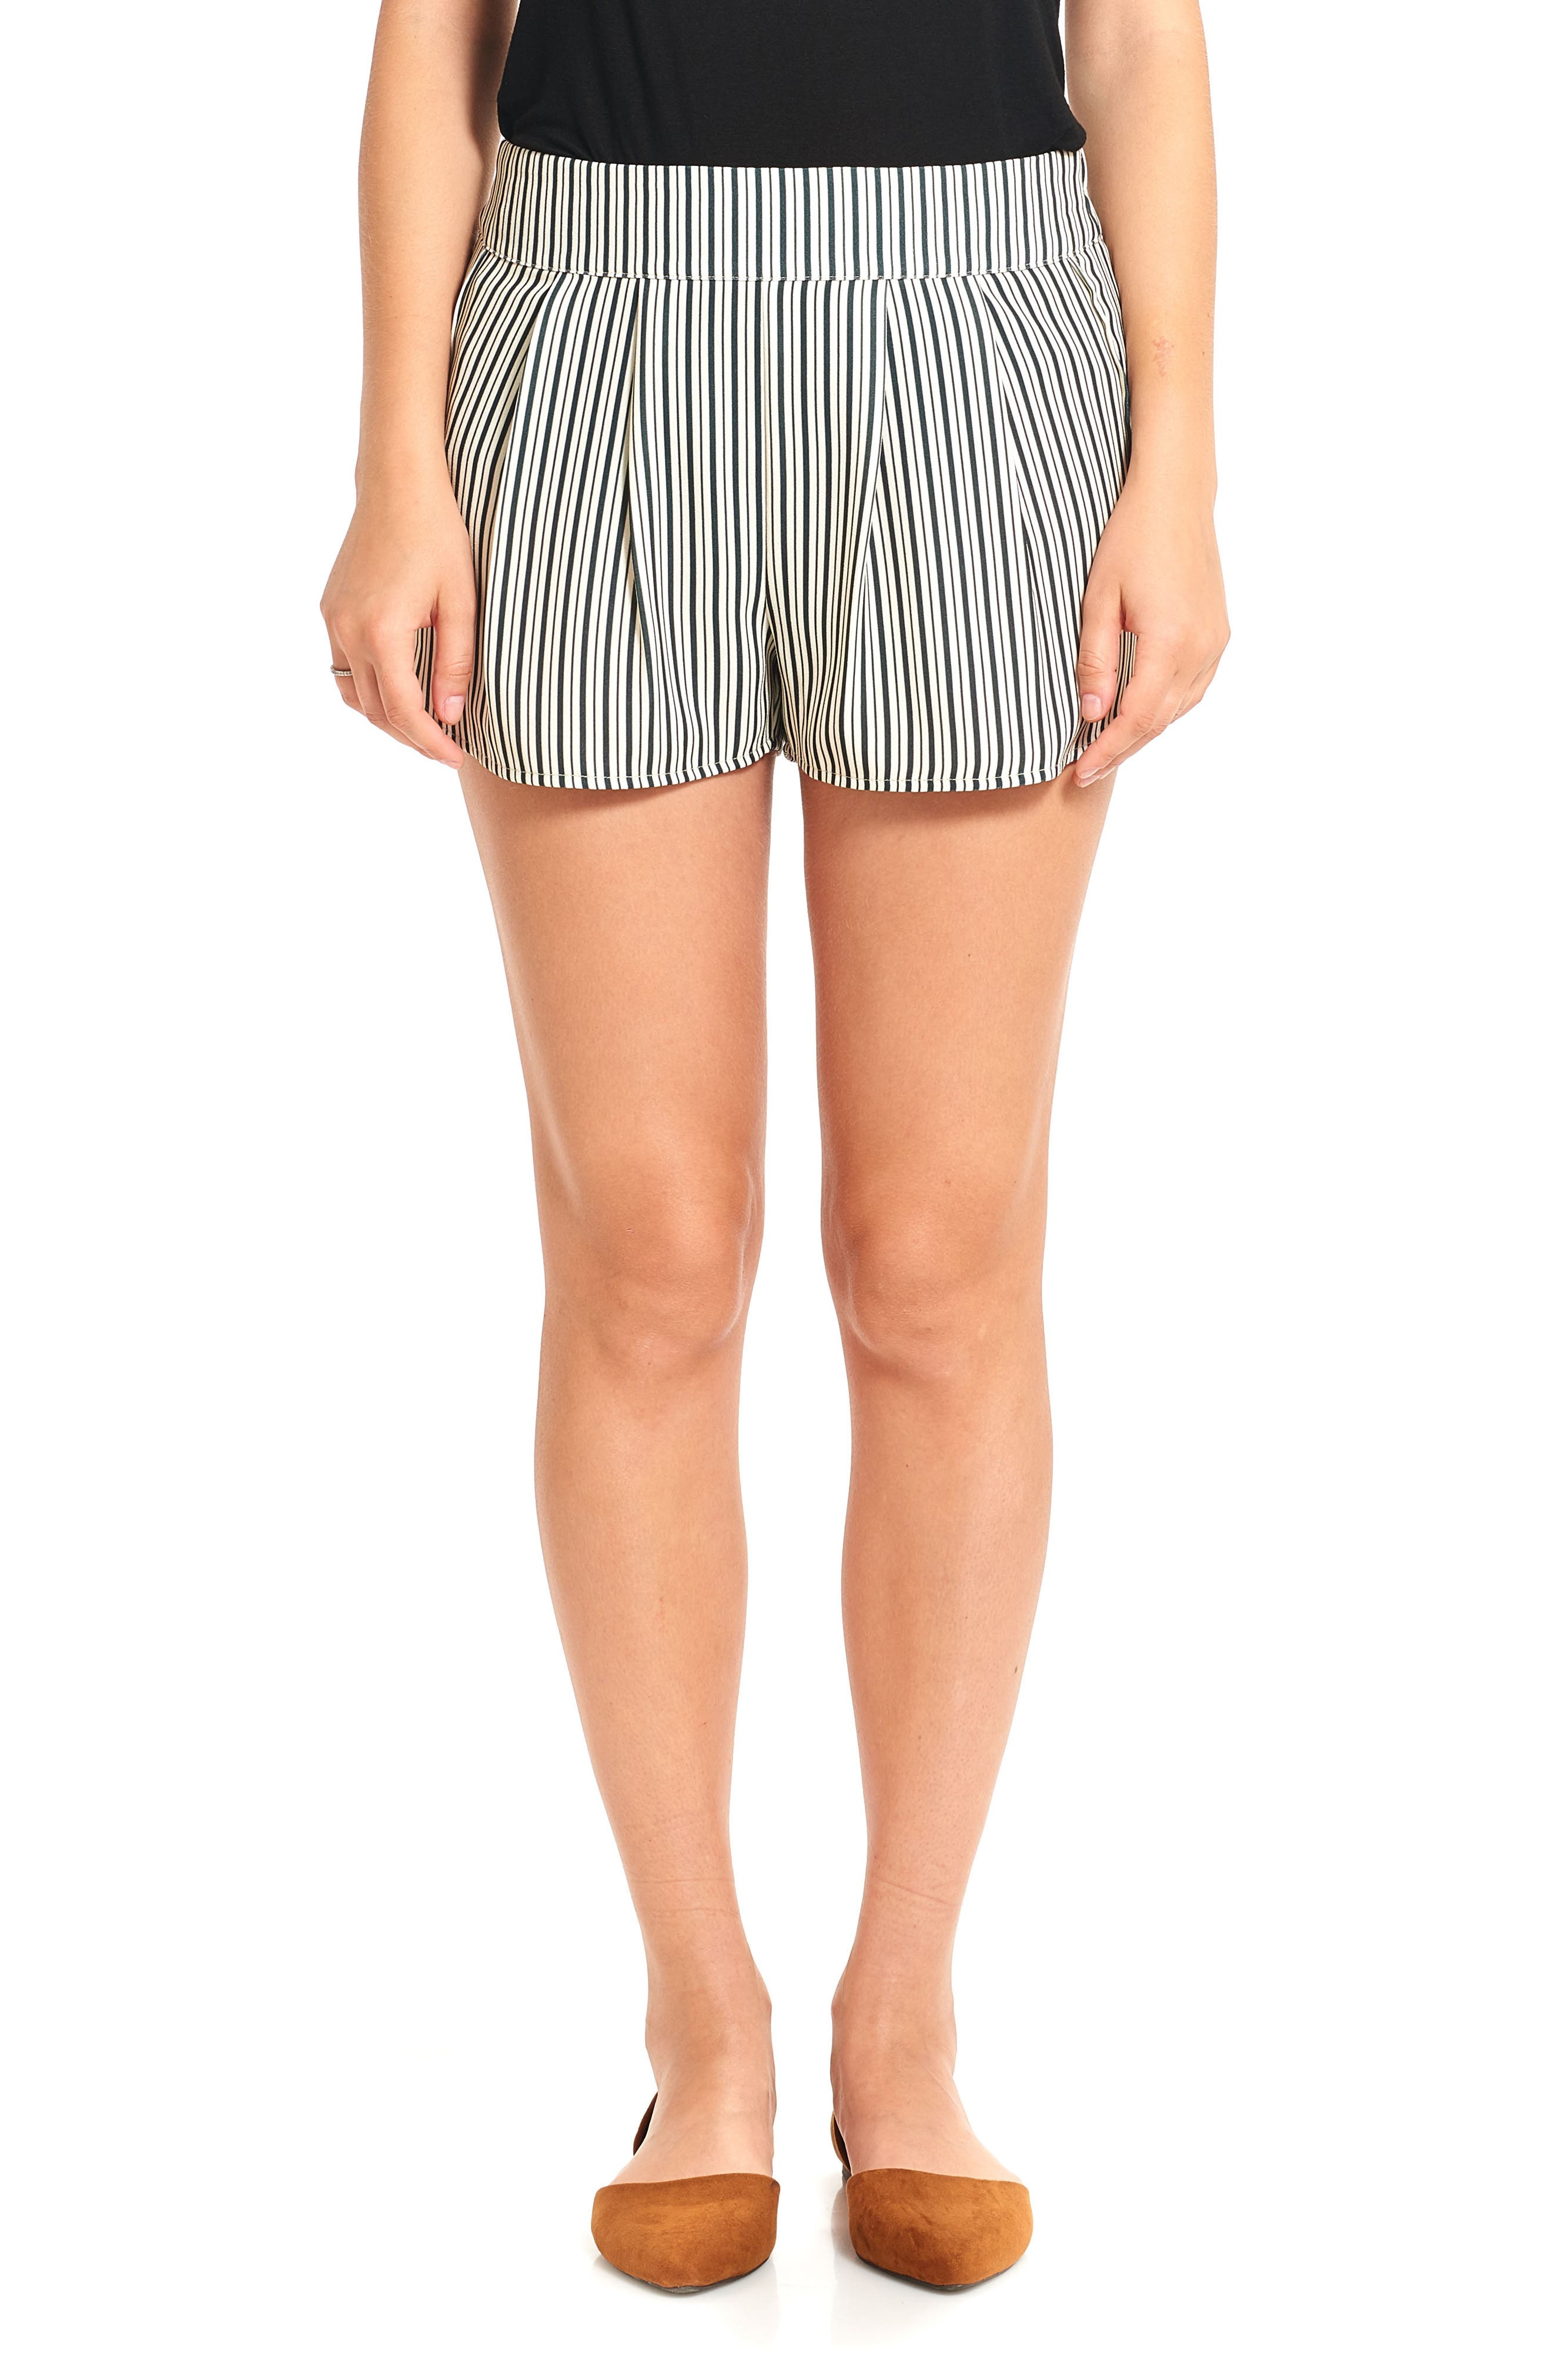 THIEVES LIKE US Stripe Running Shorts, Main, color, 001